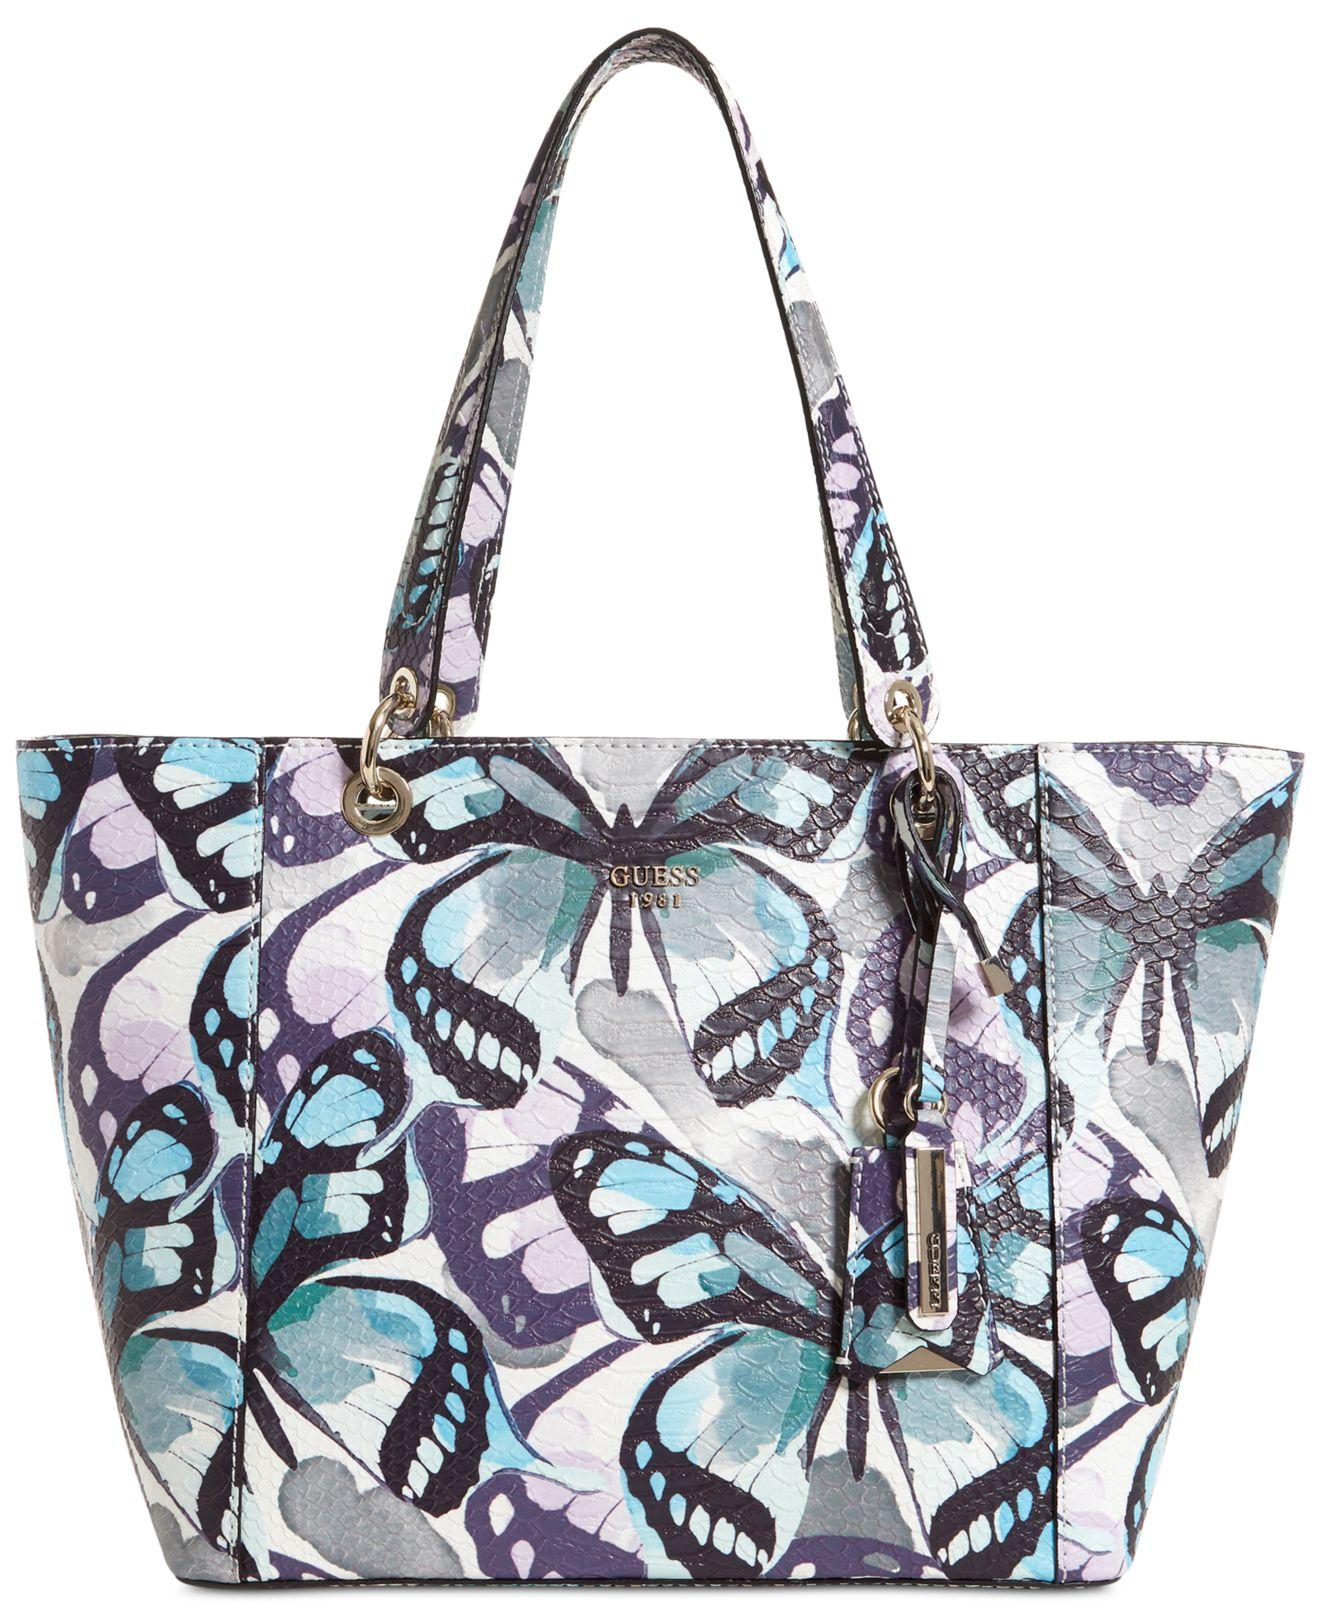 Lyst - Guess Butterfly Kamryn Extra-large Tote ad3cb0eb8347c